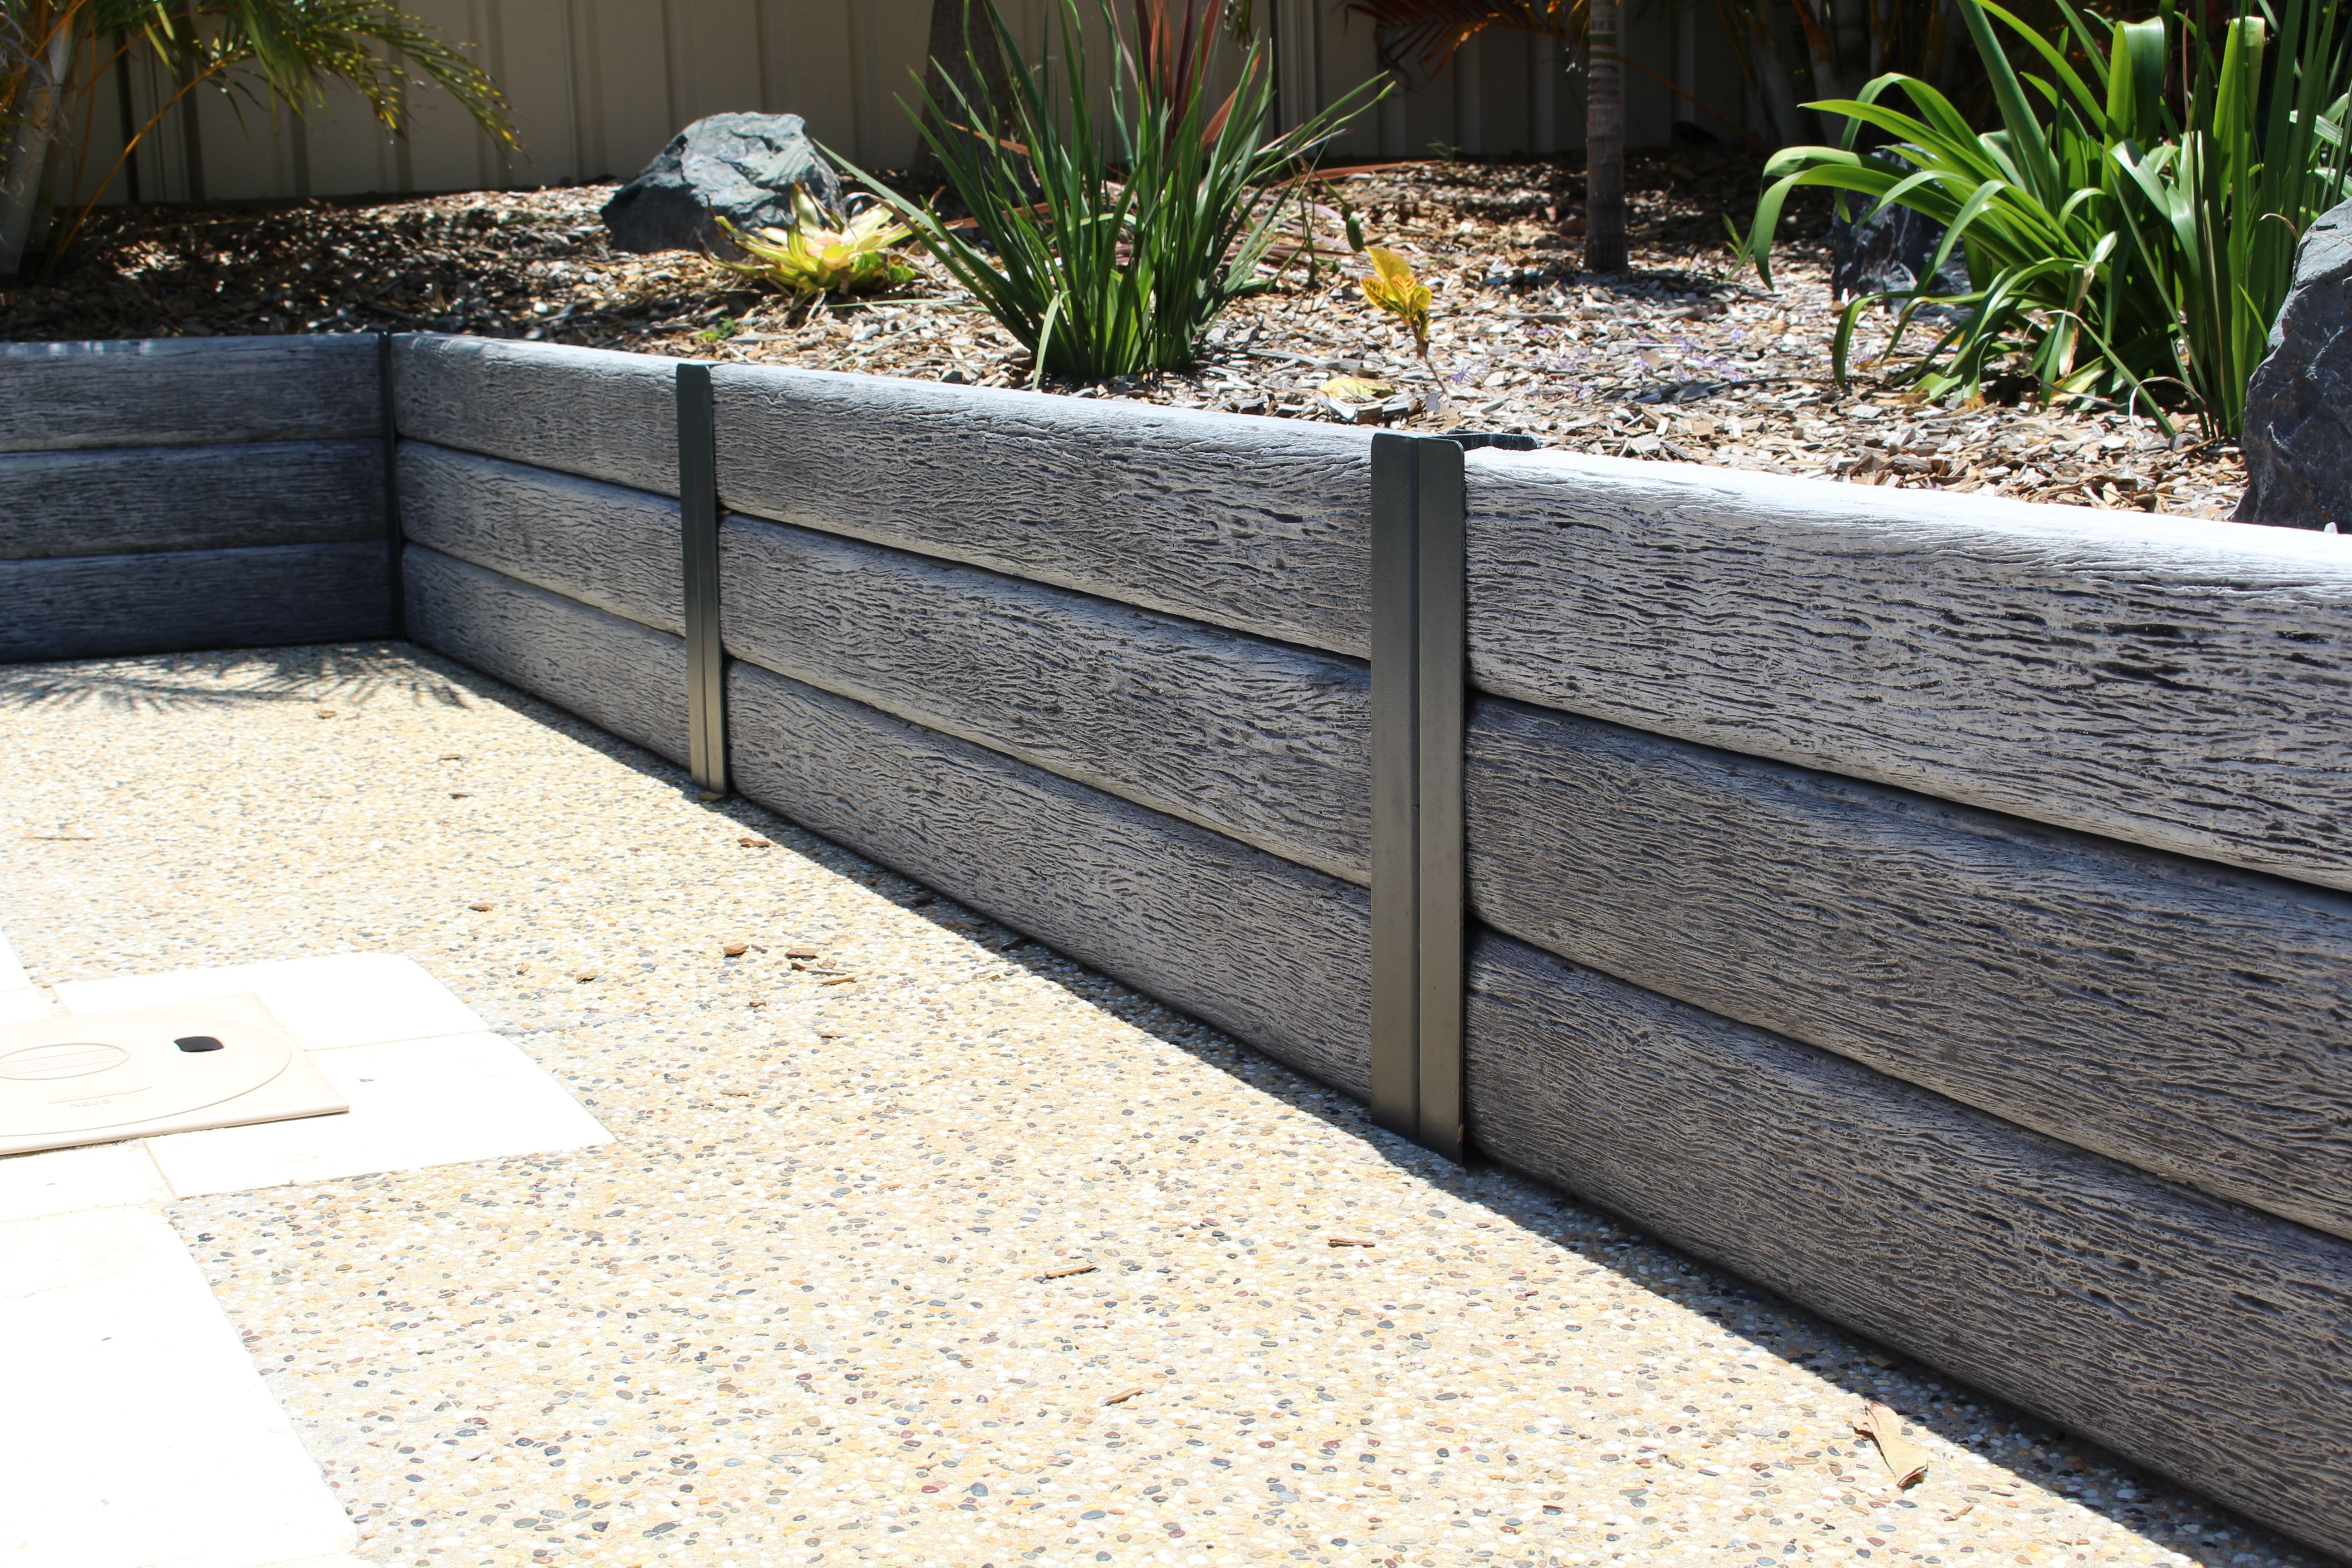 Fake Brick Wall Bunnings Ridgi Gumtree Concrete Sleeper Steel Post Retaining Wall